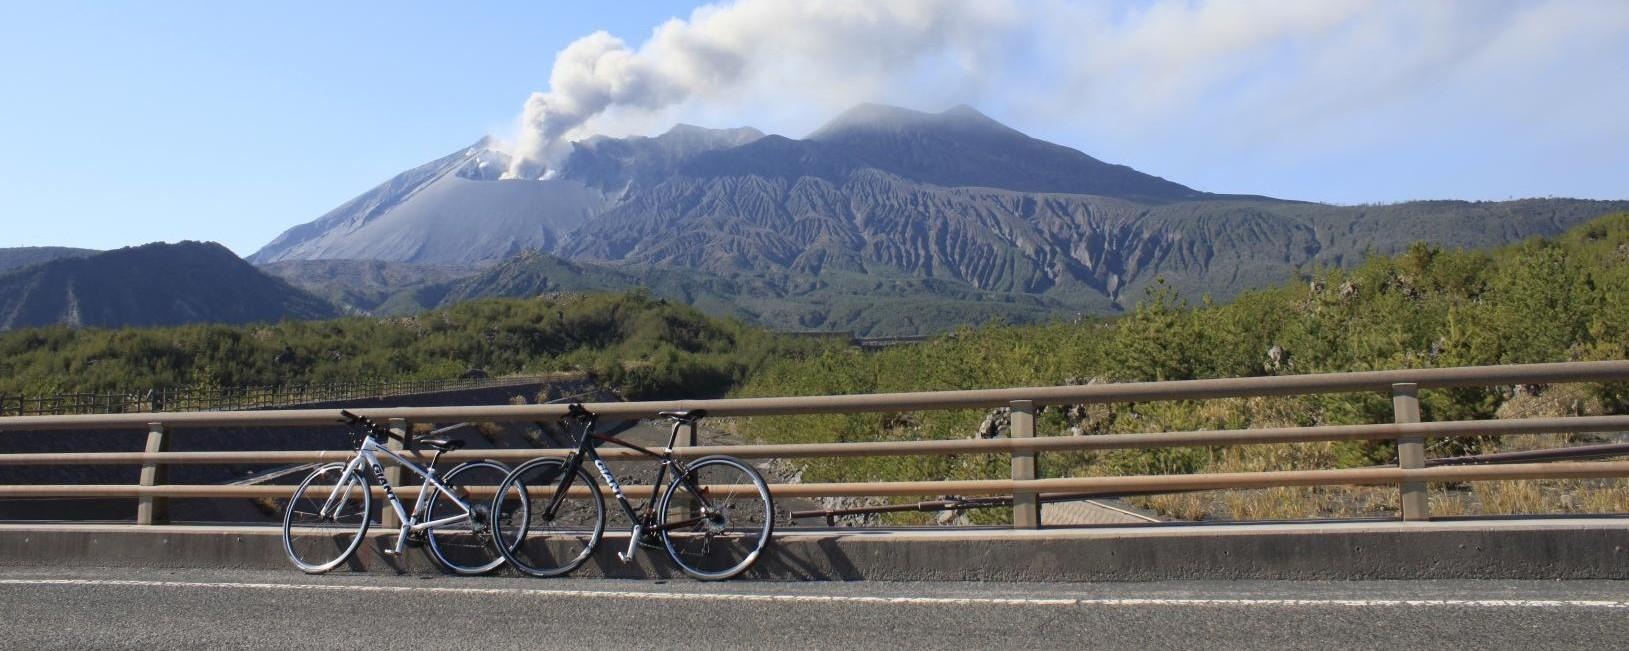 Rental OK! Experience the magnificent Sakurajima through cycling!-1